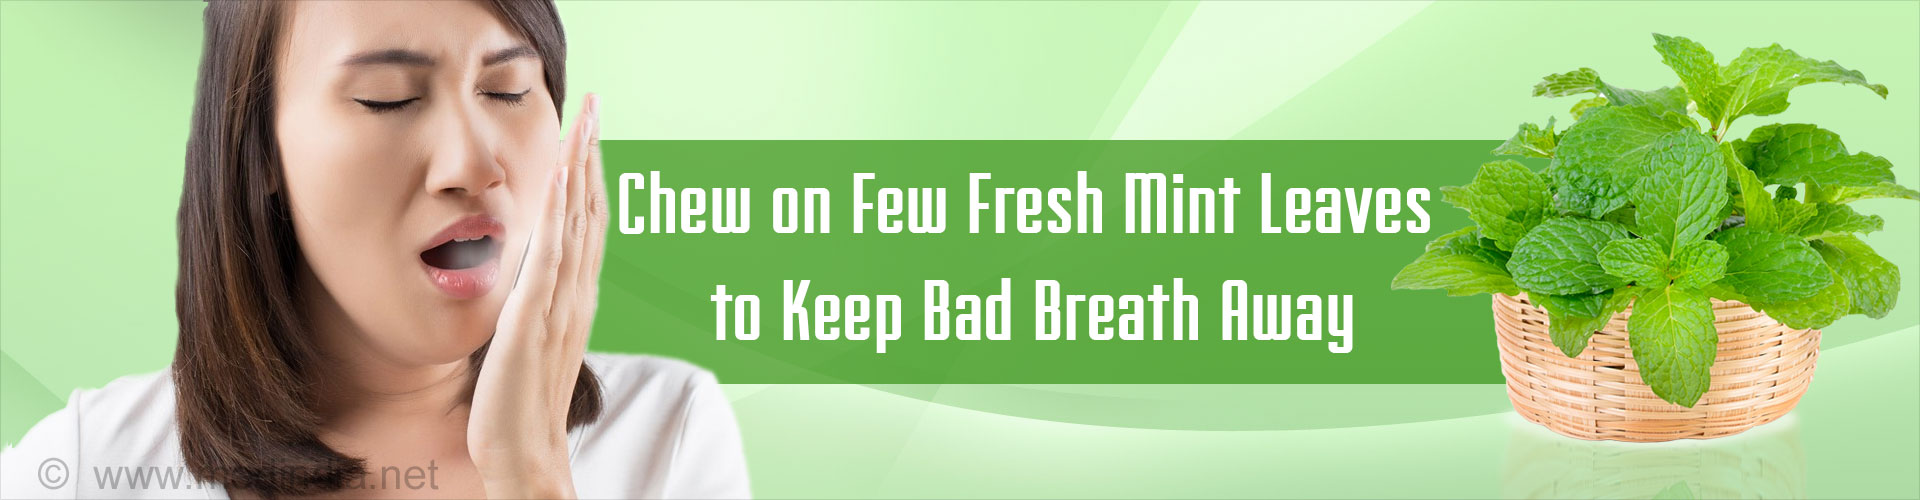 Chew on Few Fresh Mint Leaves to Keep Bad Breath Away